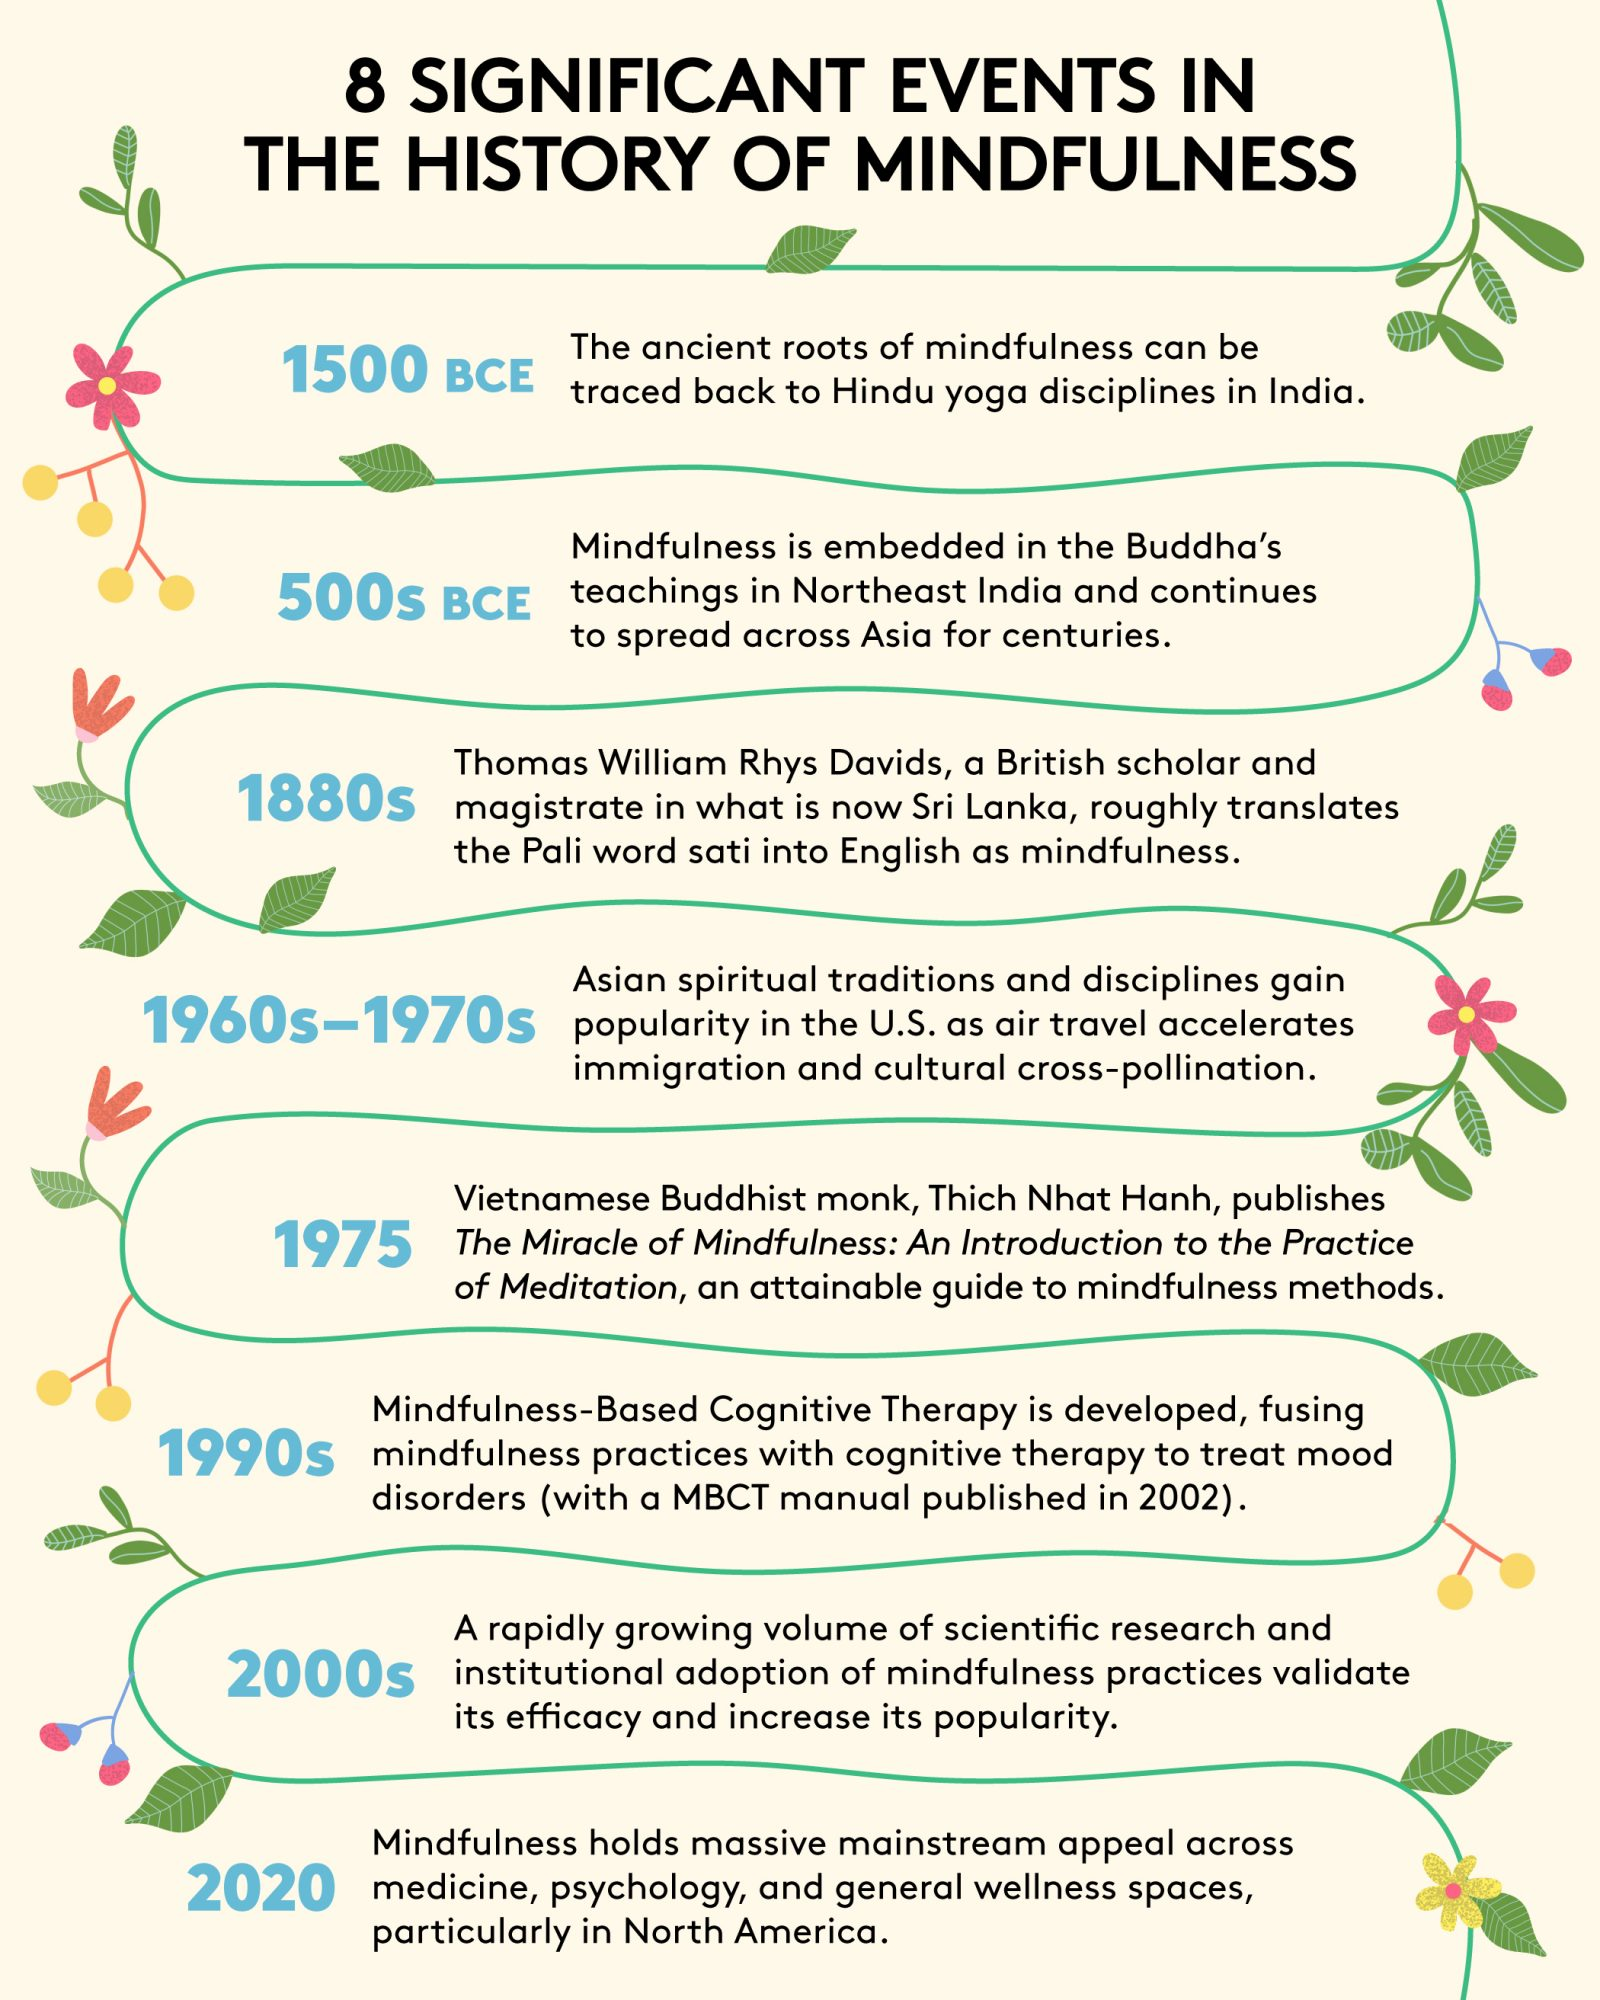 Brief mindfulness history timeline infographic